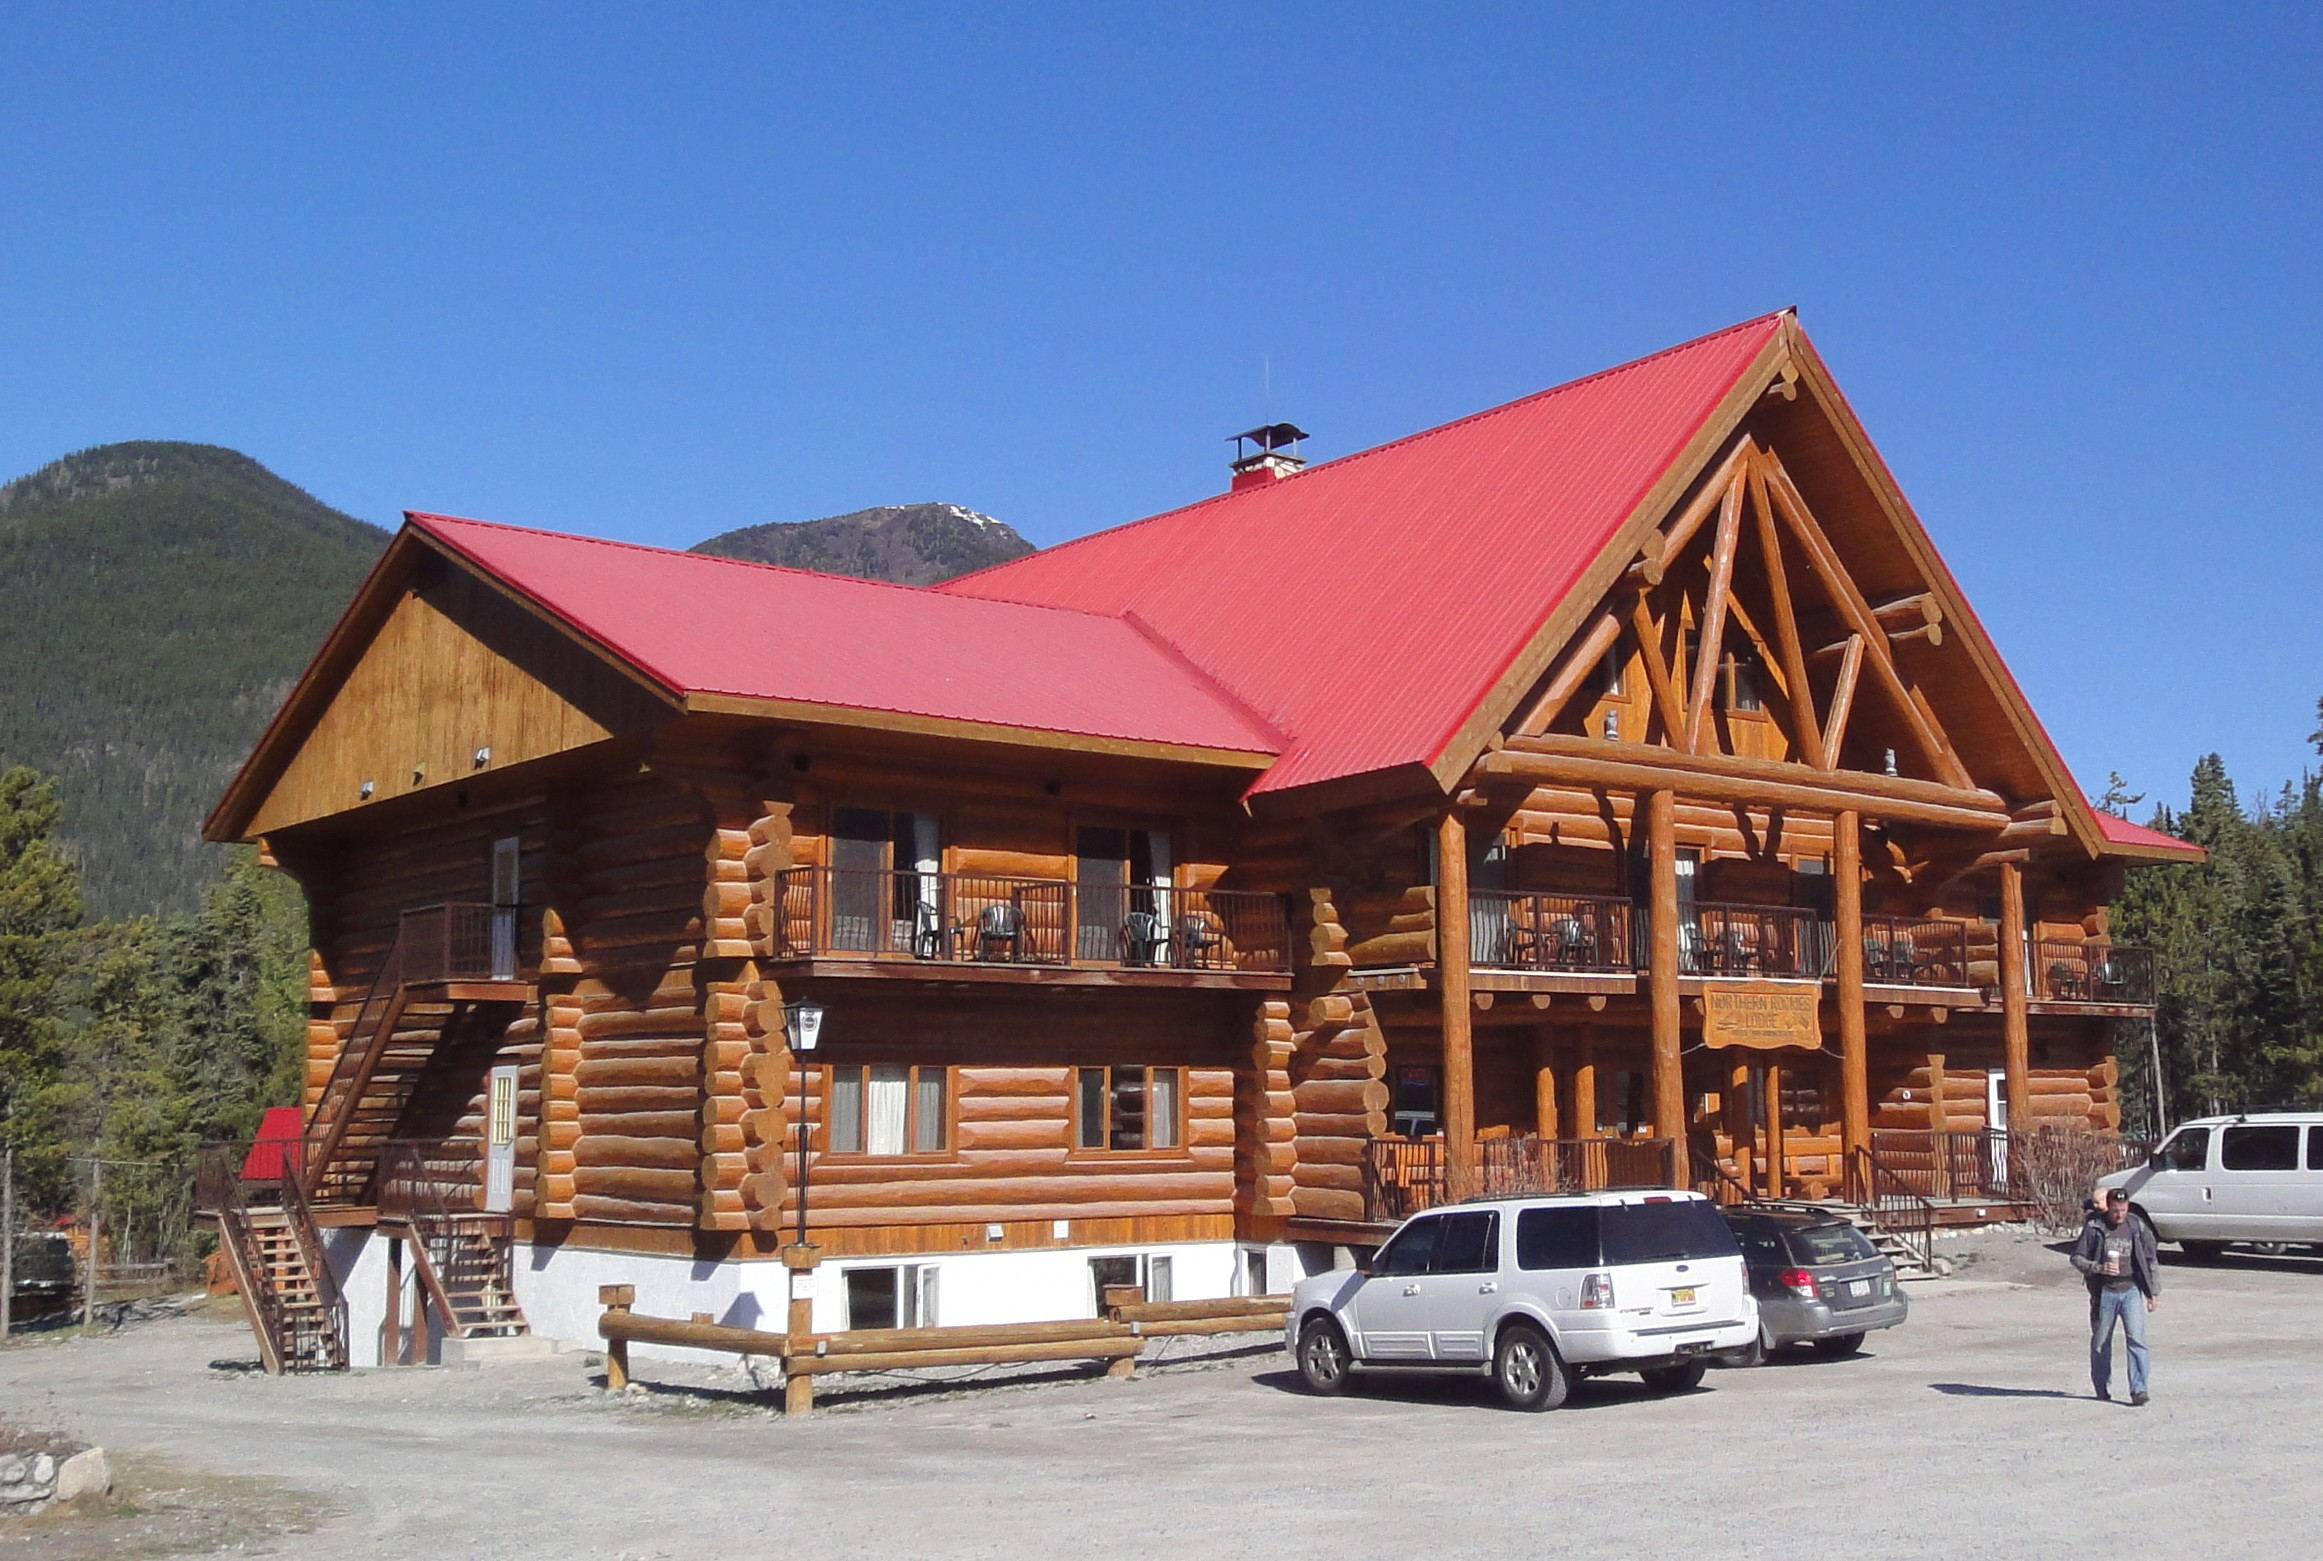 Rocky mountain lodge on muncho lake b c biggest ball for Rocky mountain lodges